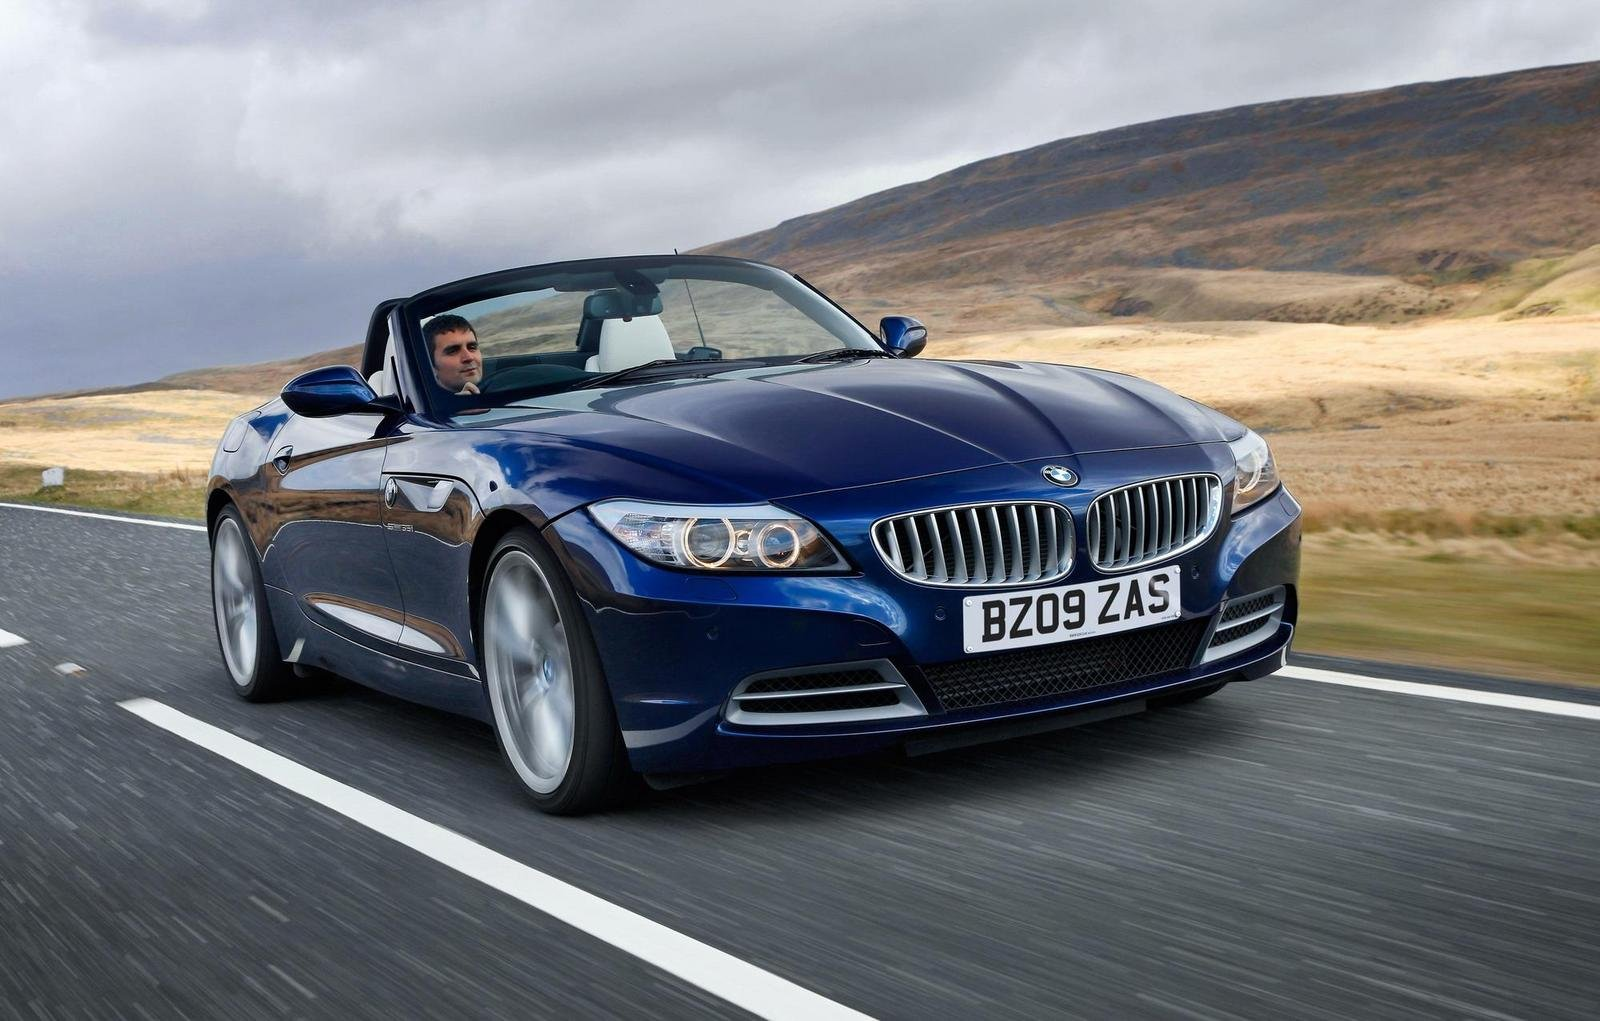 2009 Bmw Z4 Roadster Picture 299360 Car Review Top Speed